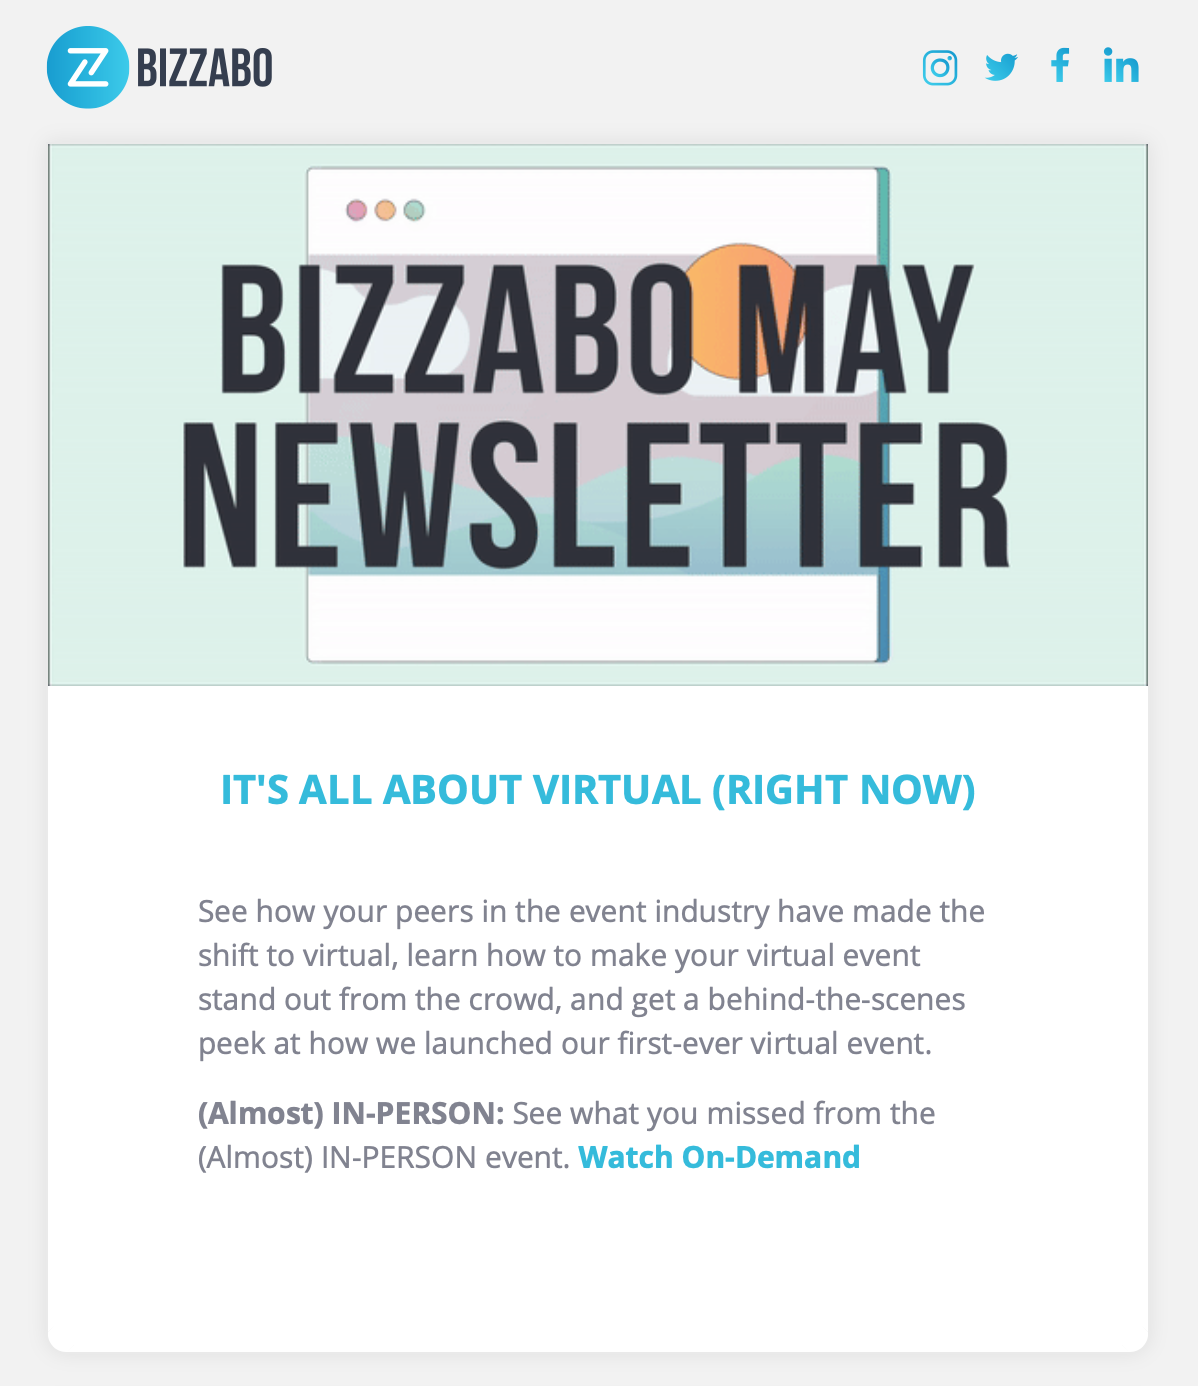 Bizzabo using a newsletter to help their audience shift to virtual events.